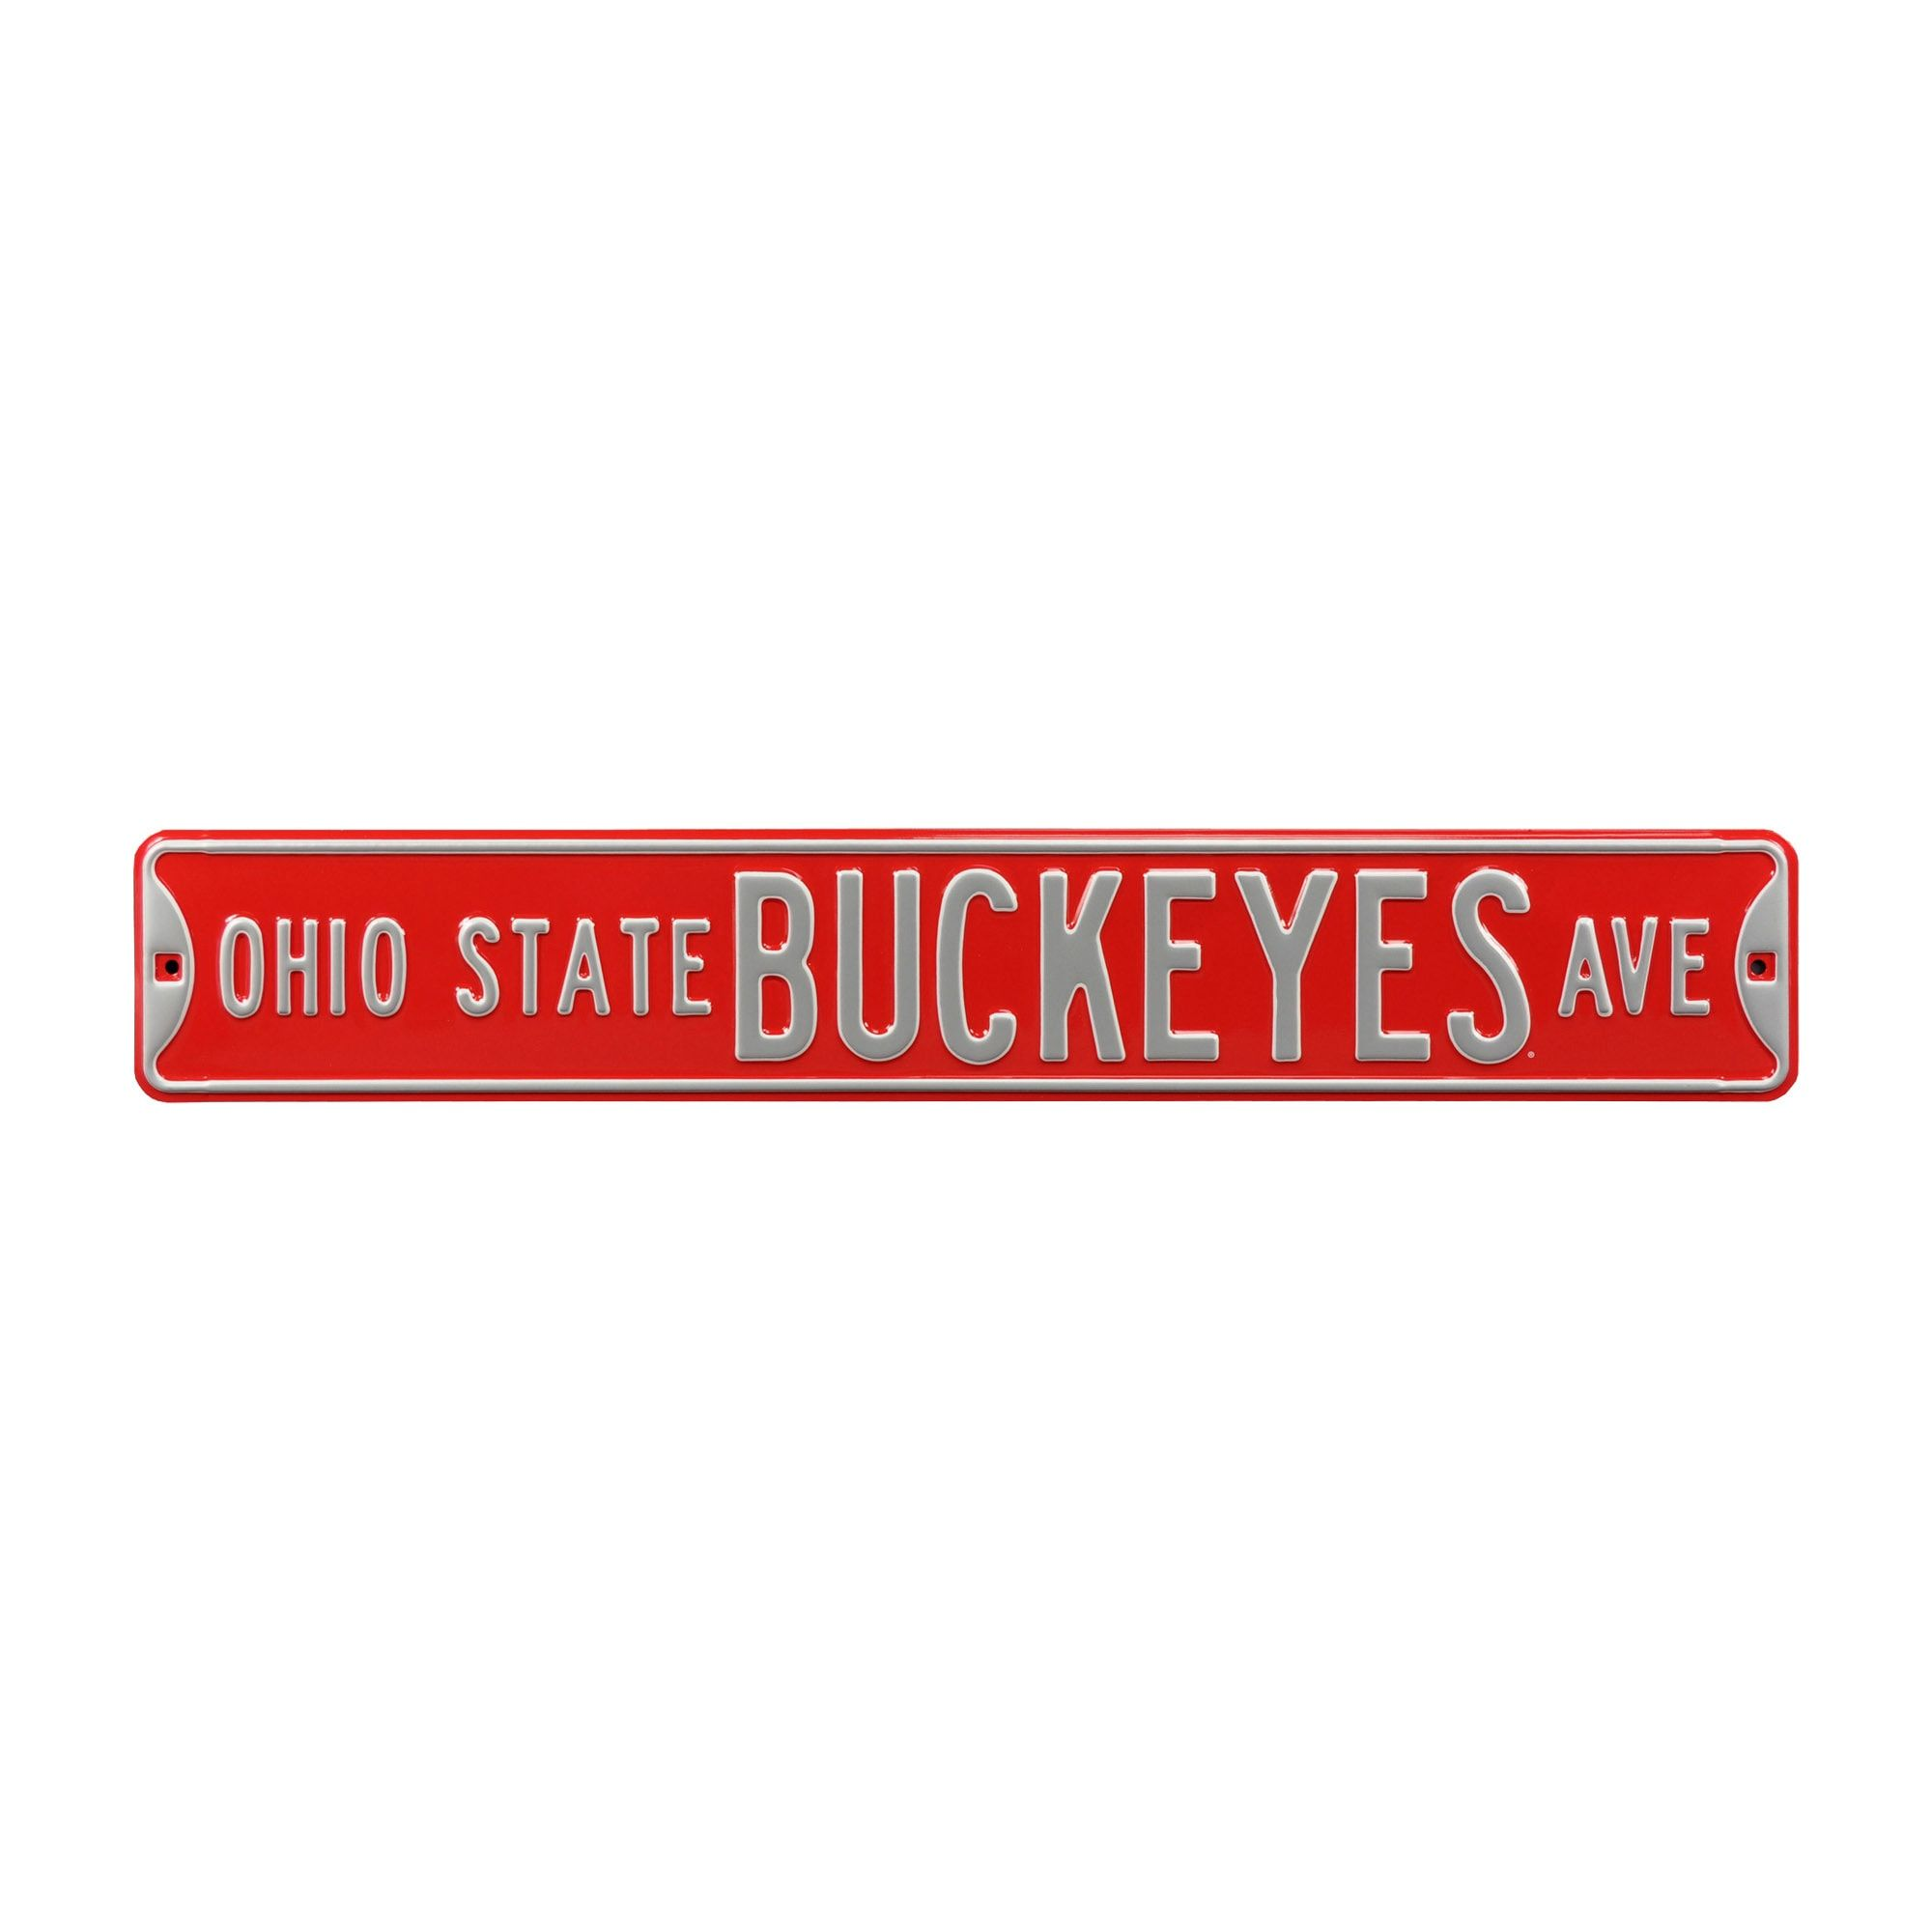 Ohio State Buckeyes: Ohio State Buckeyes Avenue - Officially Licensed Metal Street Sign